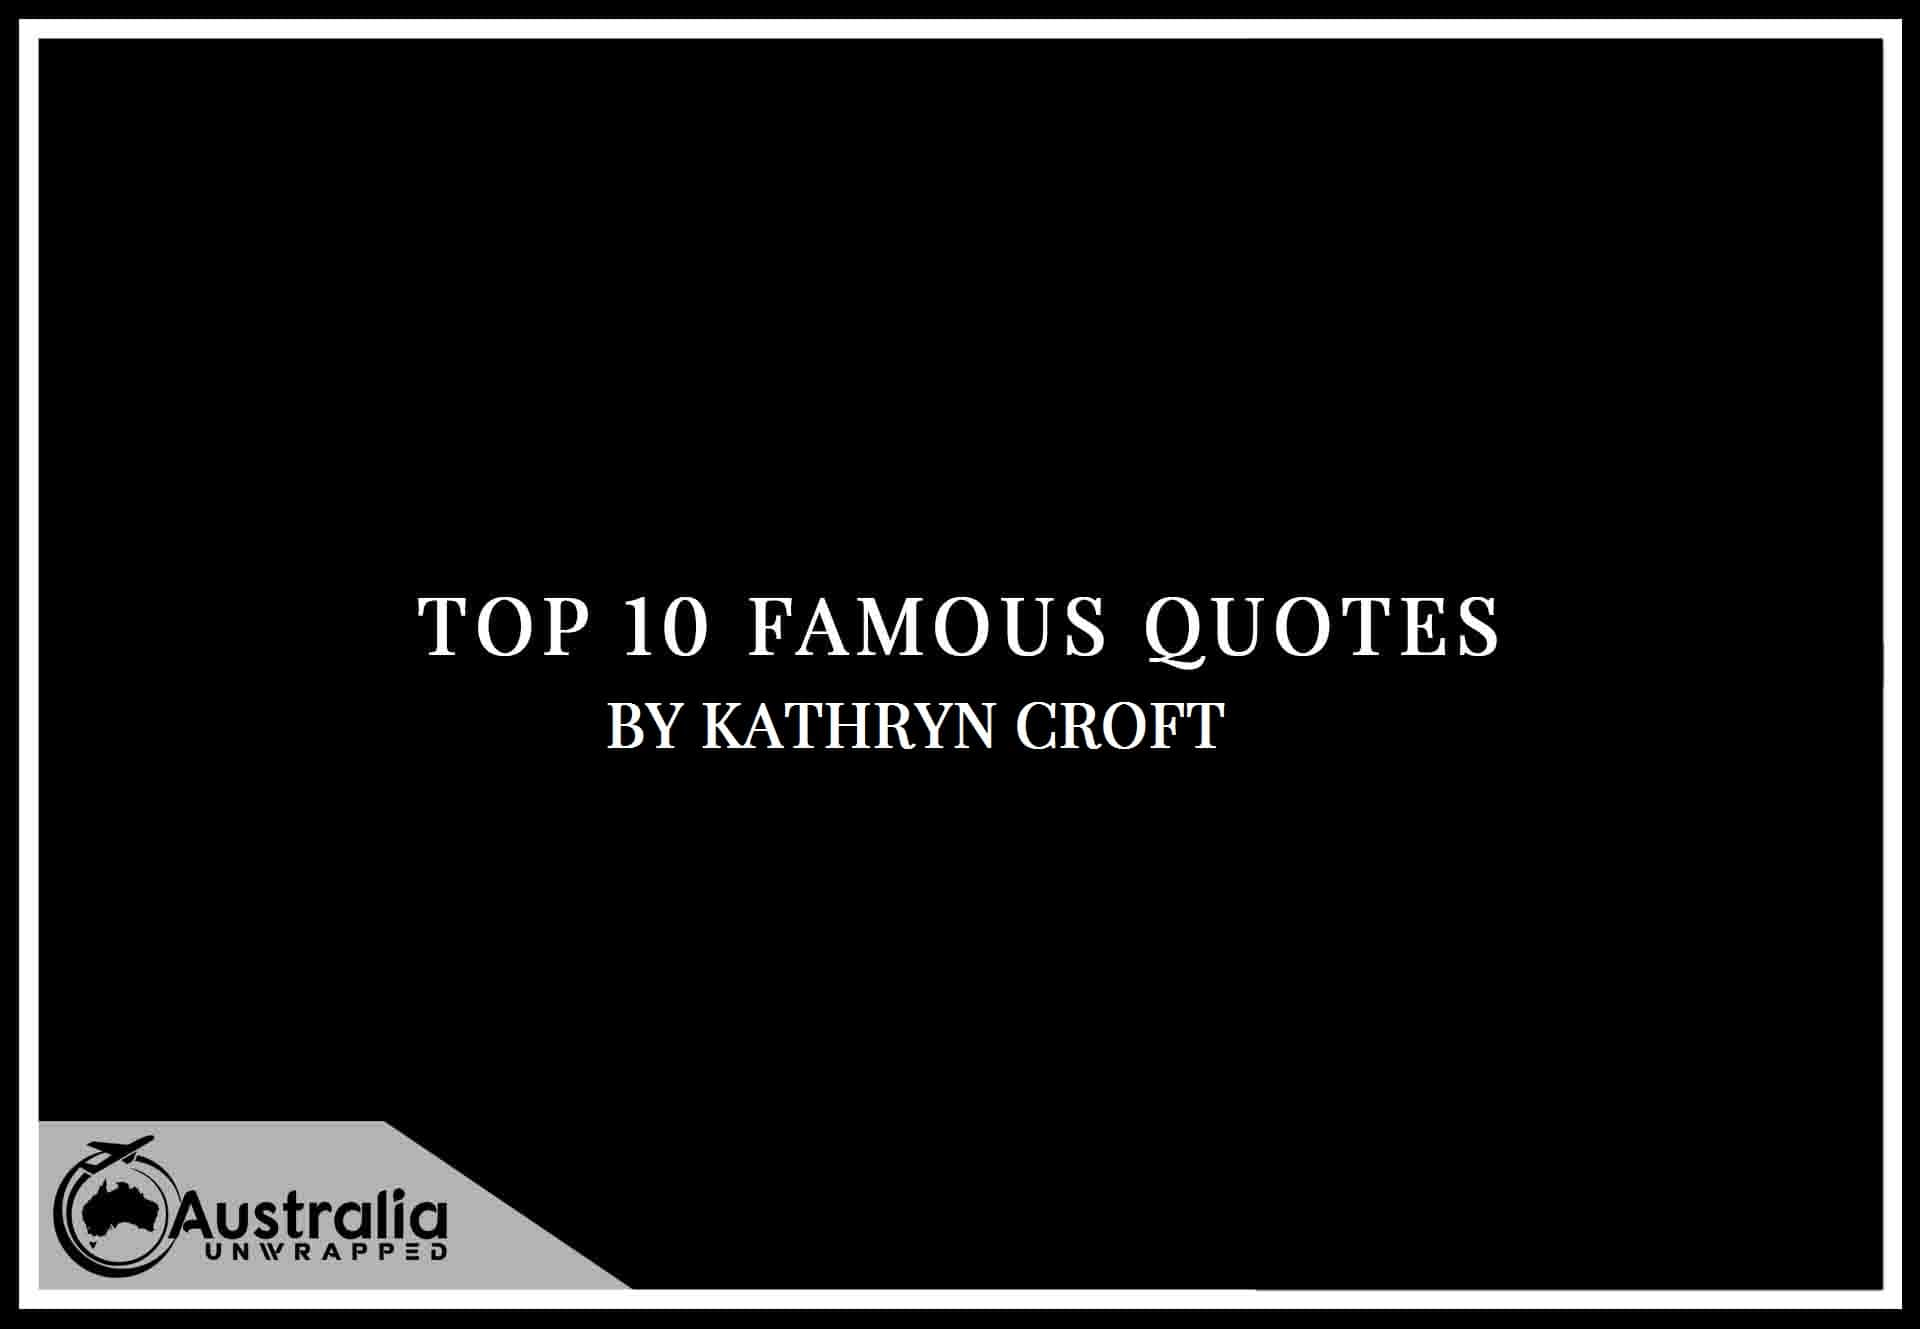 Kathryn Croft's Top 10 Popular and Famous Quotes